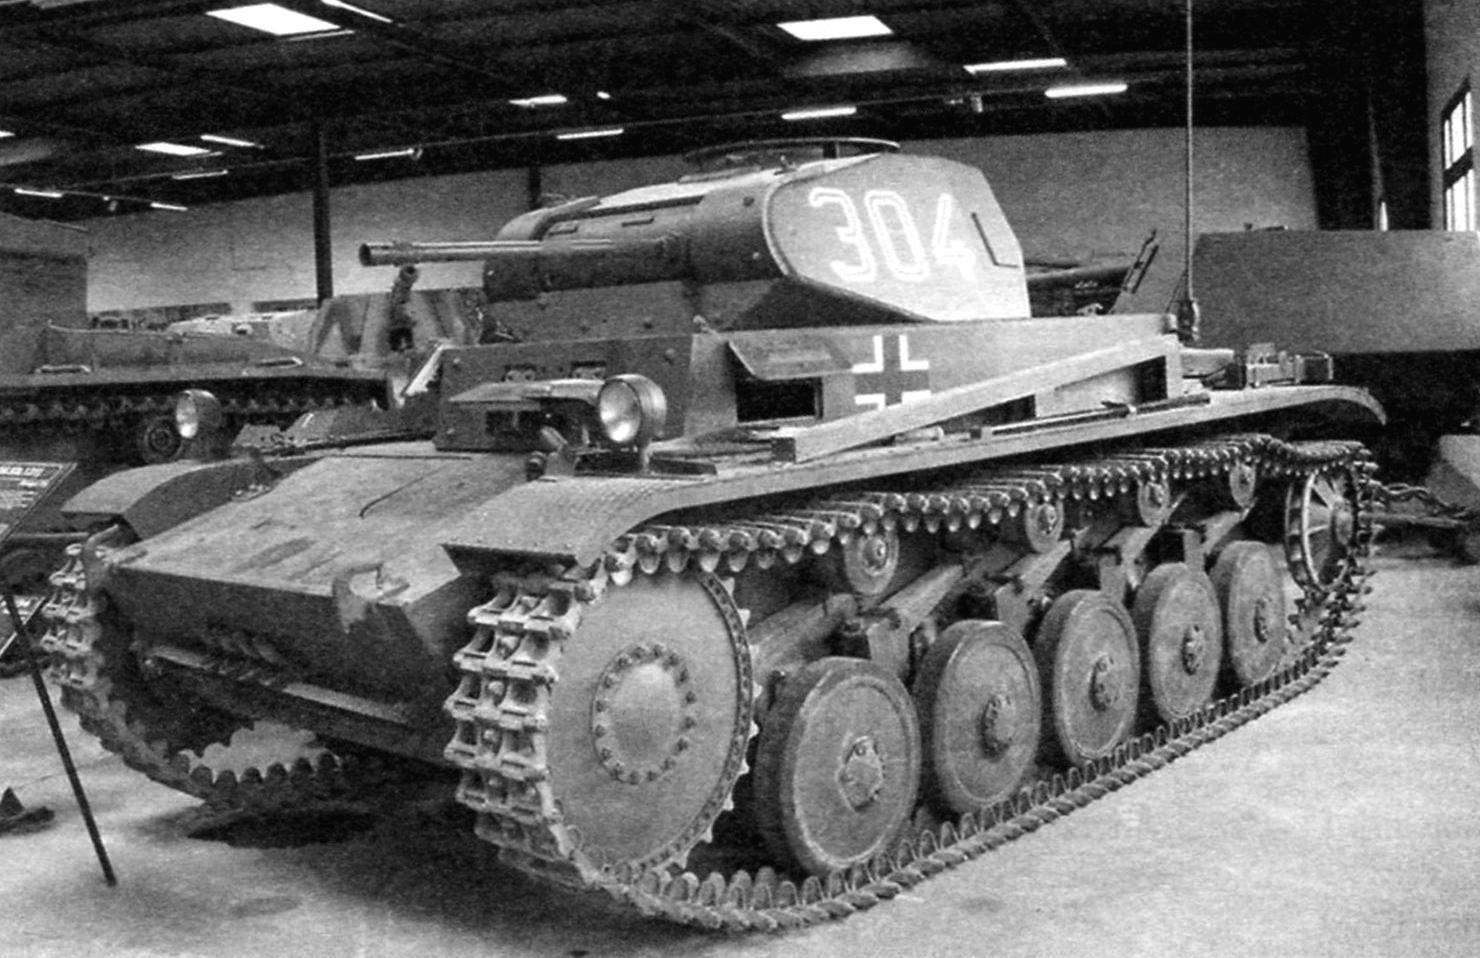 German tank Pz. Kpfw. II (T-Il), on the chassis which created the ACS